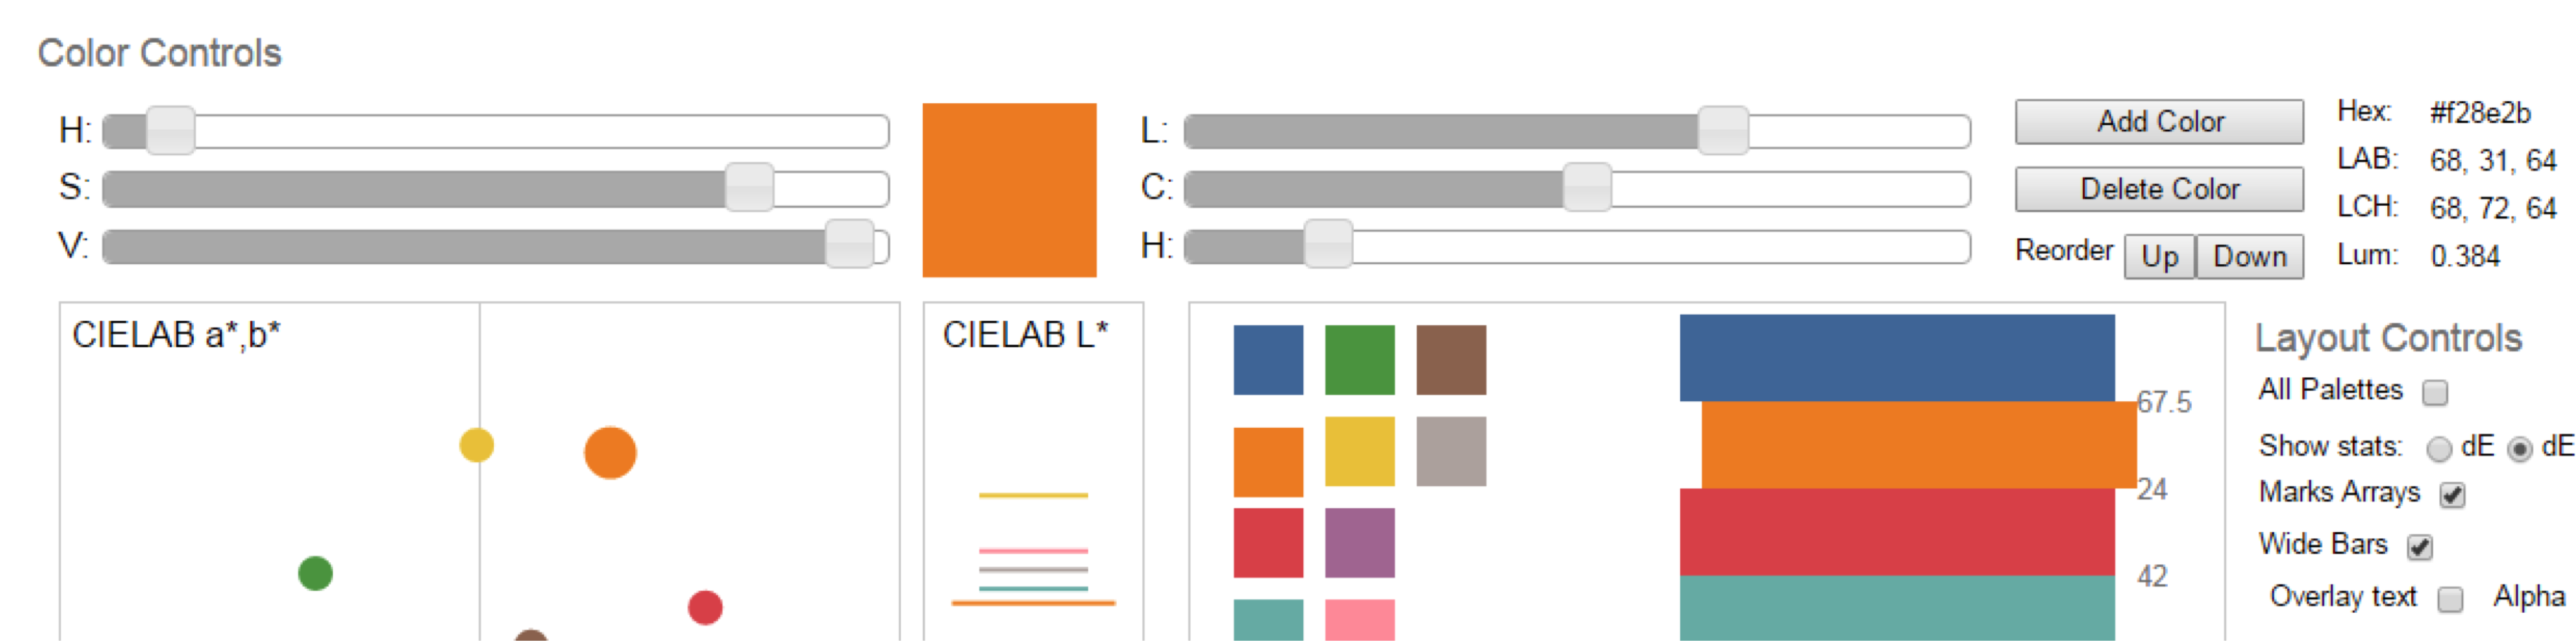 How we designed the new color palettes in tableau 10 tableau in addition we display the colors in a variety of ways to simulate their use in the product in the left column the larger squares represent the colors geenschuldenfo Choice Image